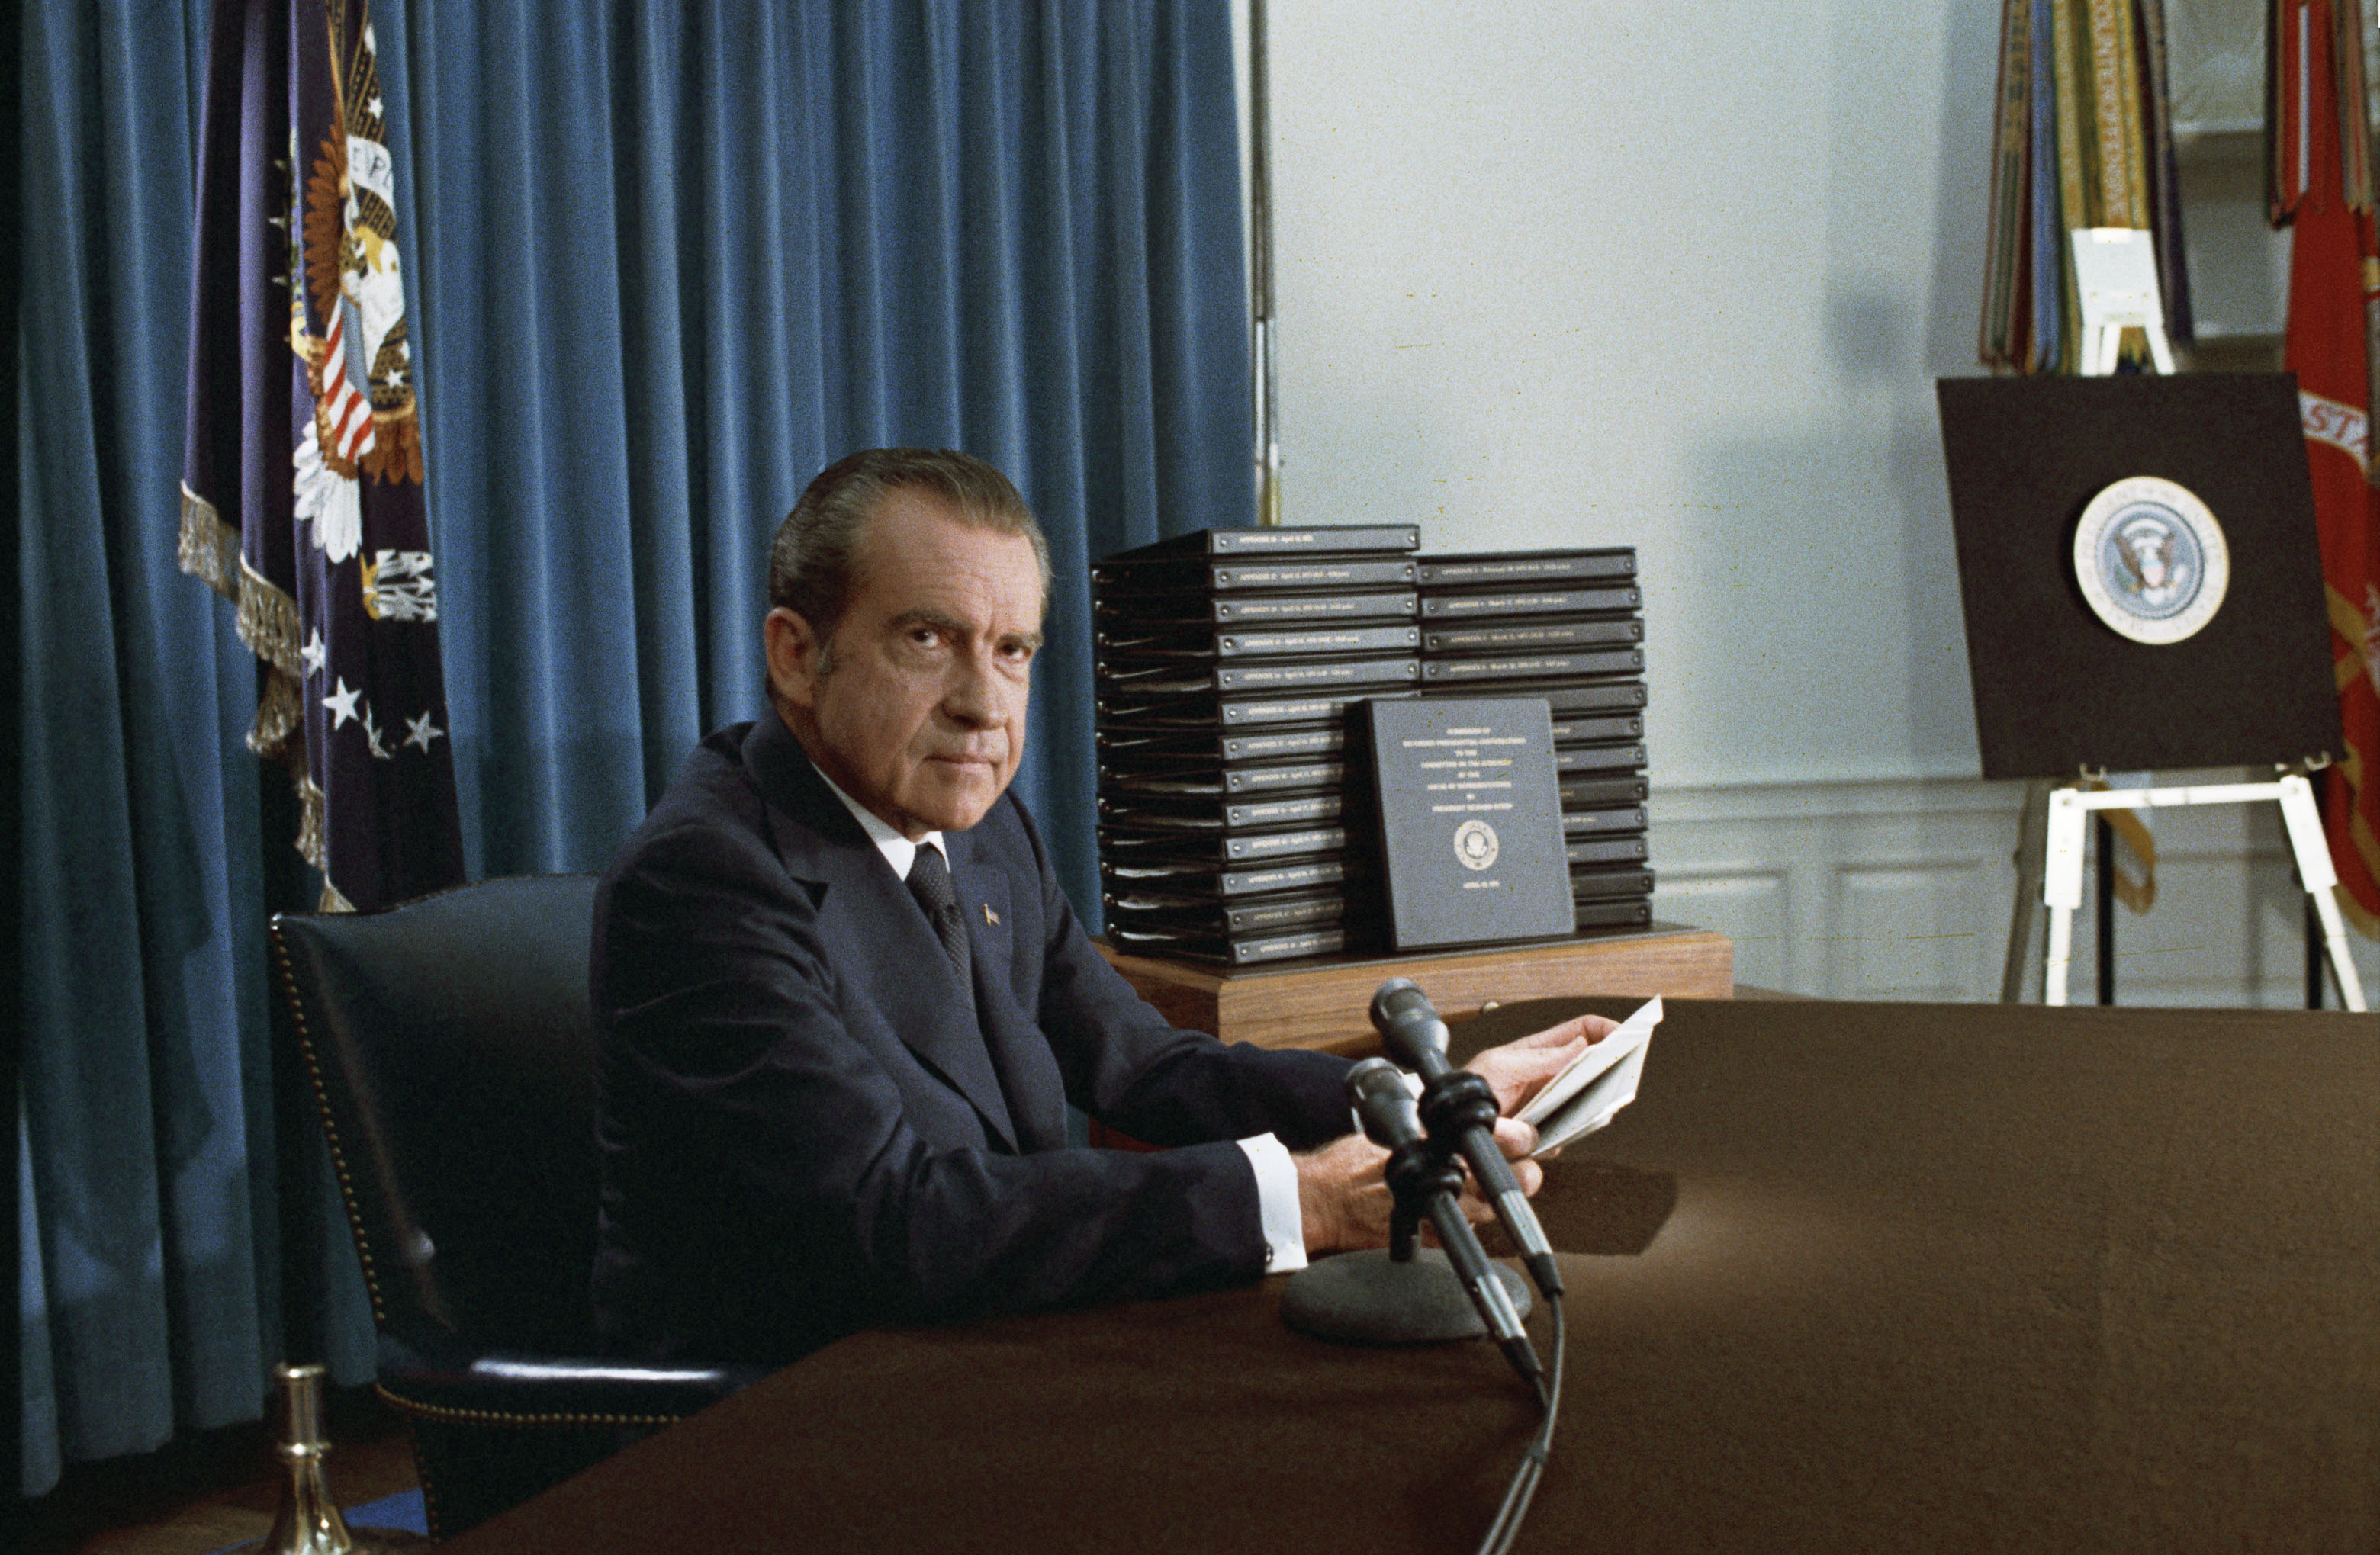 Throwback Thursday: Grand jury report and recommendation to the House, 1972